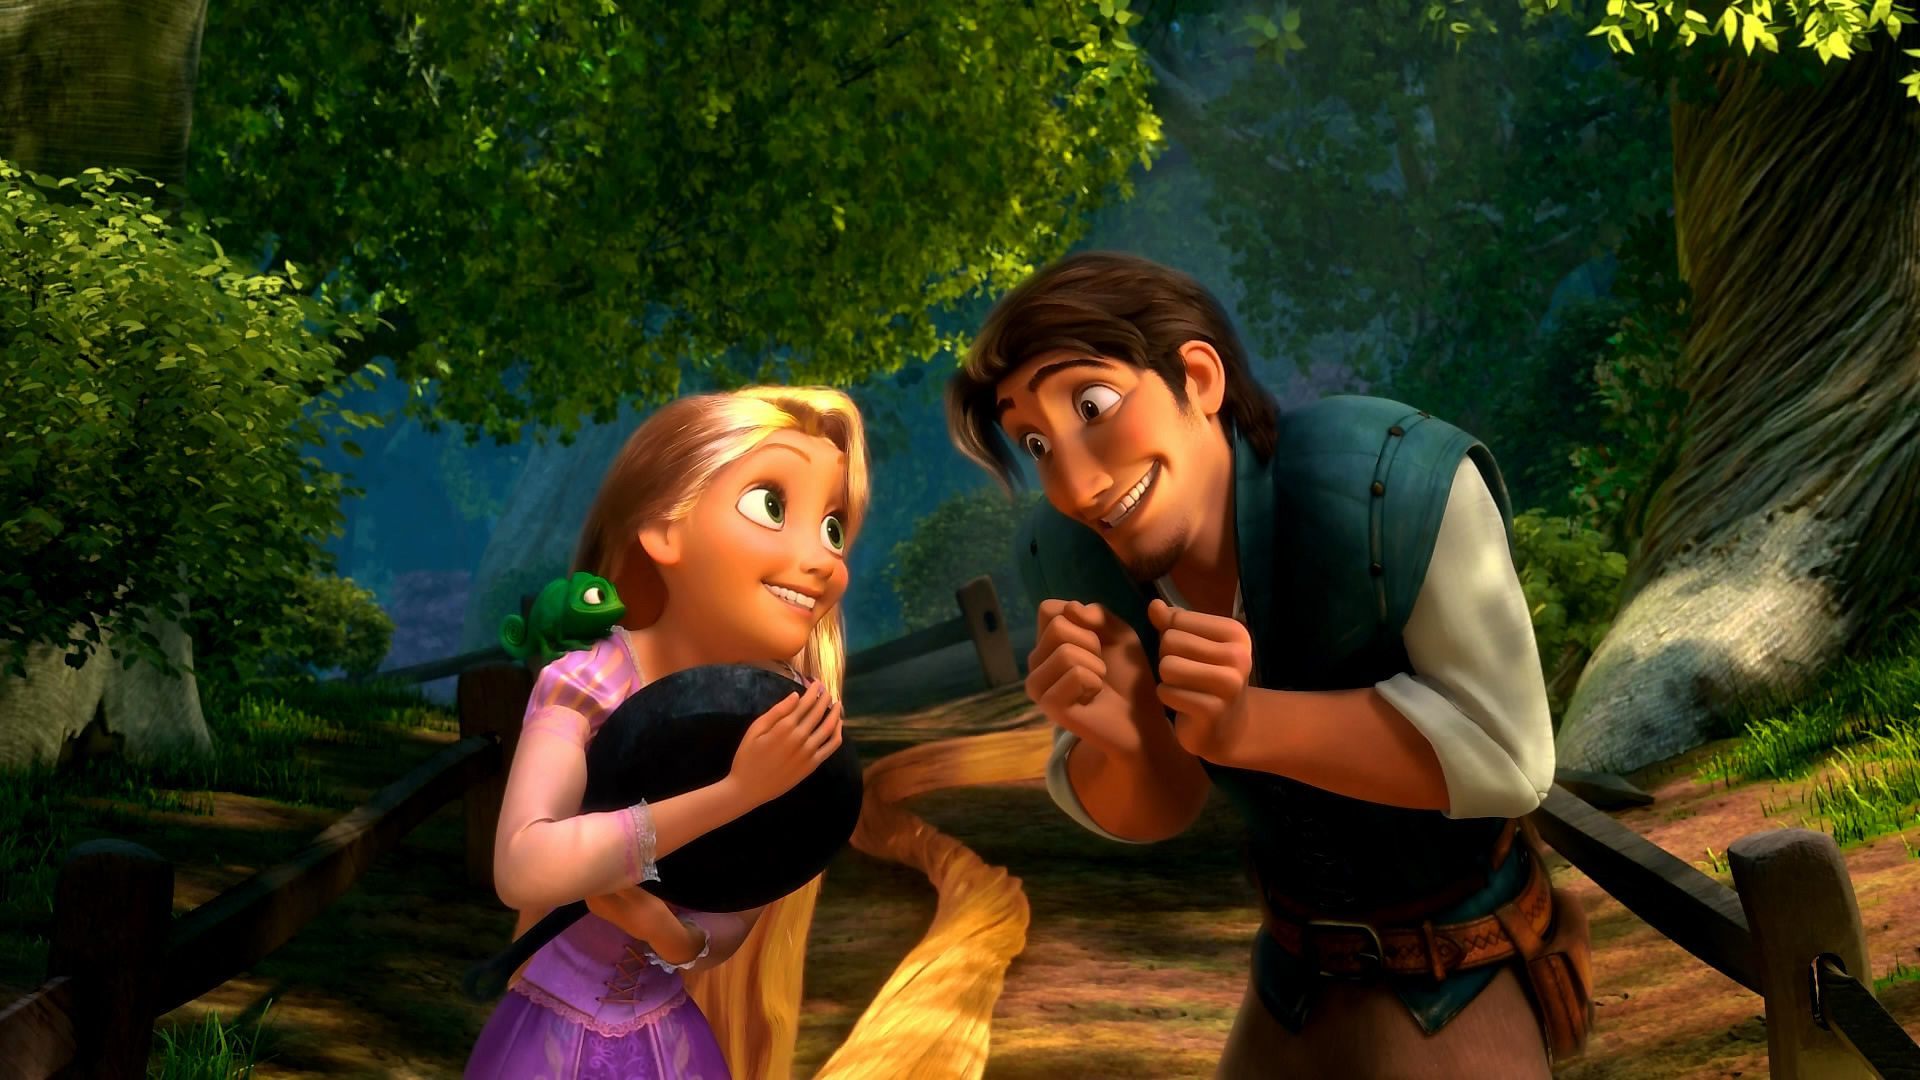 Tangled-Rapunzel-hair-Flynn-Rider.jpg (1920×1080) | Disney ... for Tangled Wallpaper Rapunzel And Flynn  117dqh